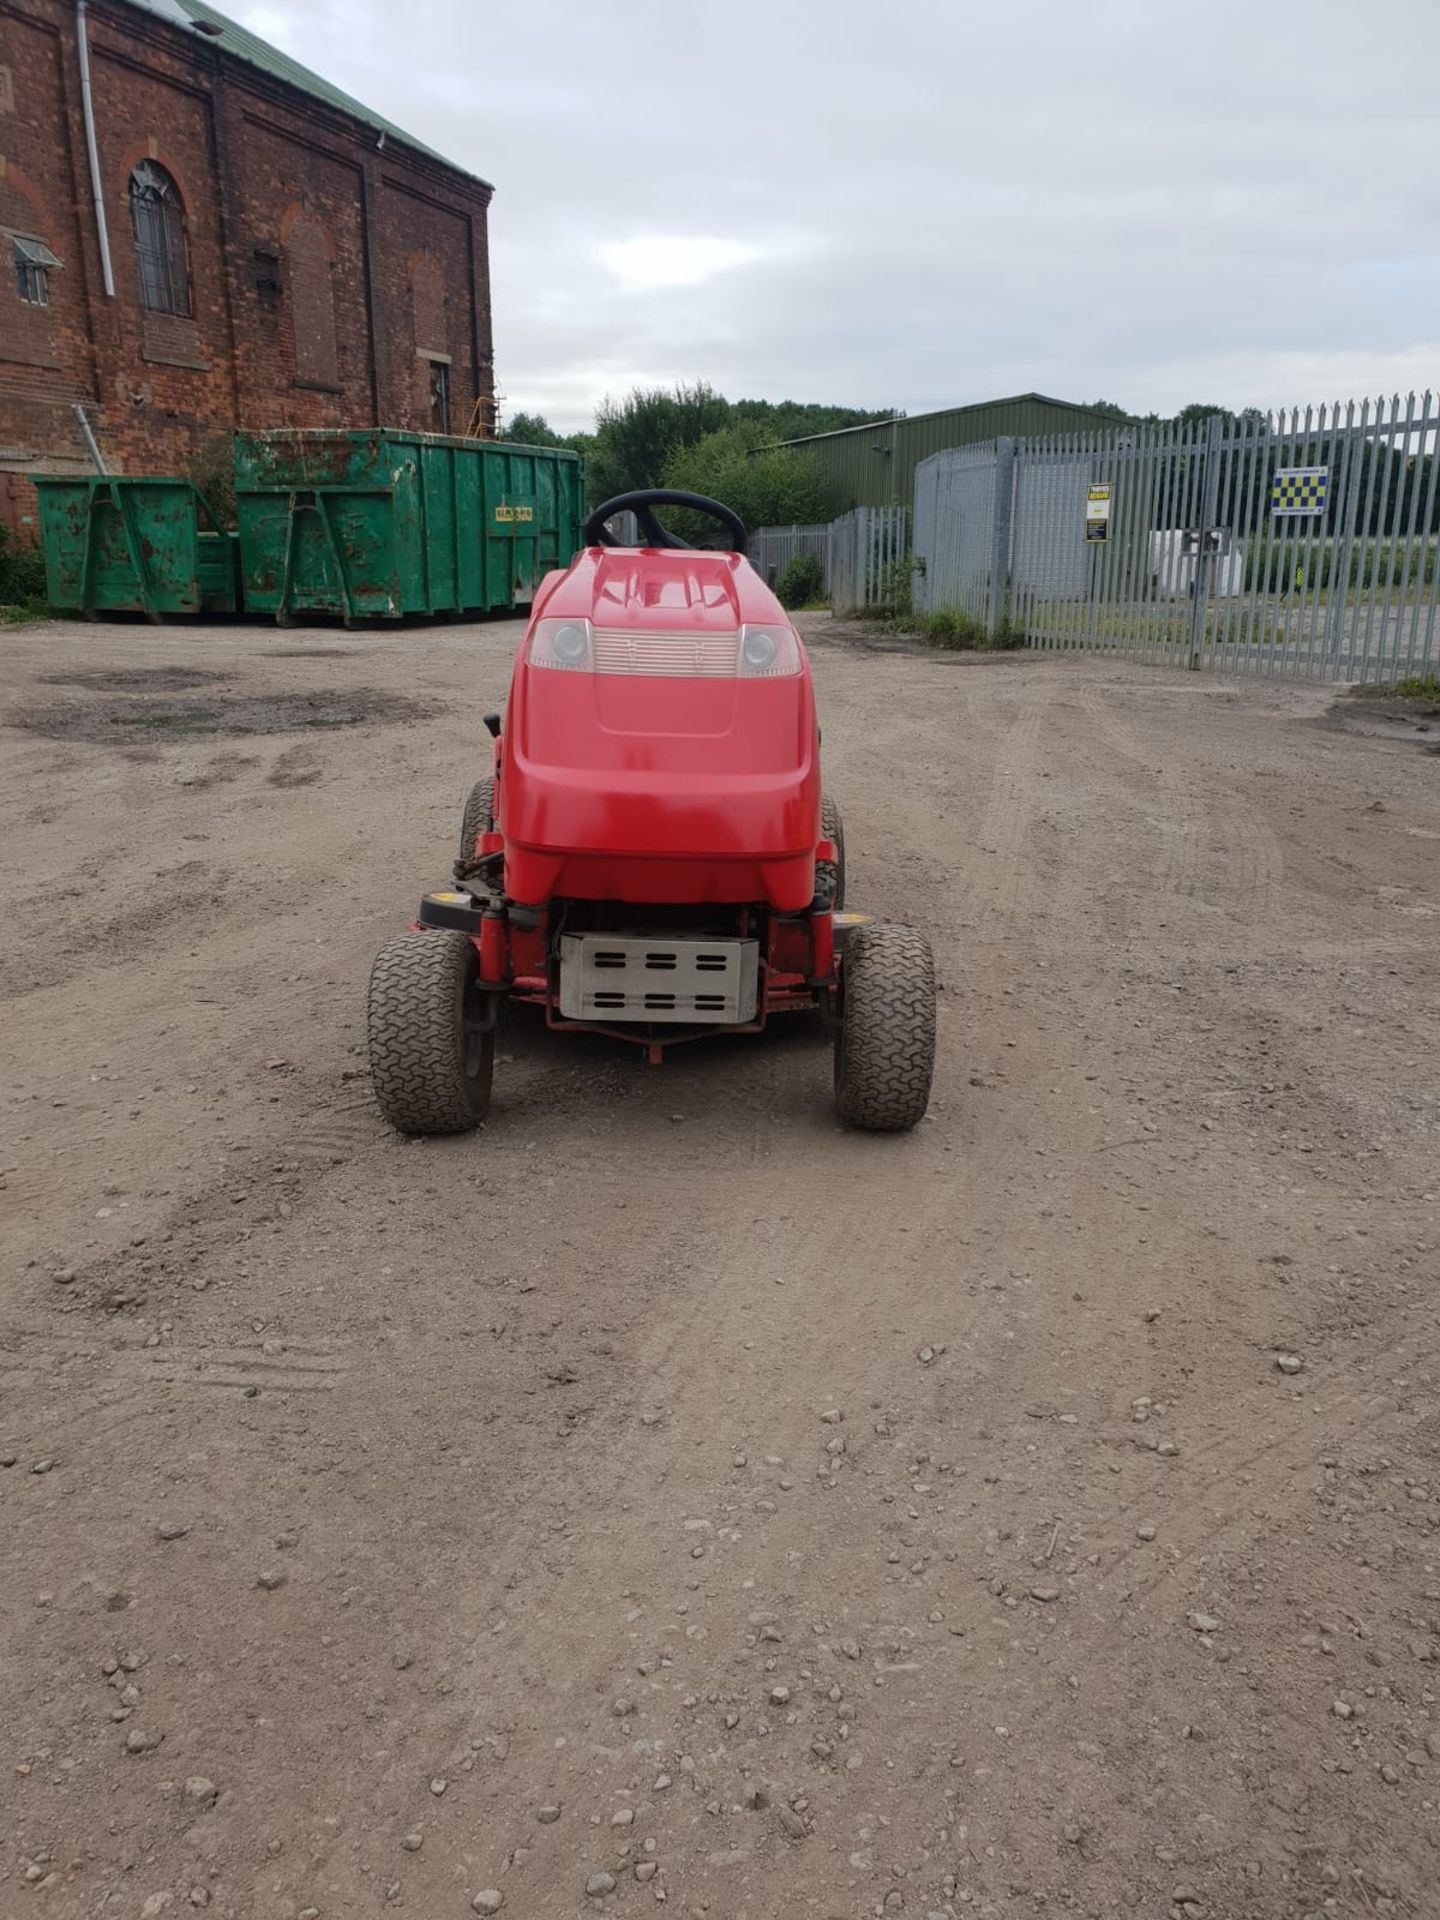 Lot 37 - COUNTAX 14HP V TWIN RIDE ON LAWN MOWER, RUNS, DRIVES AND SWEEPS, ALL WORKS *NO VAT*